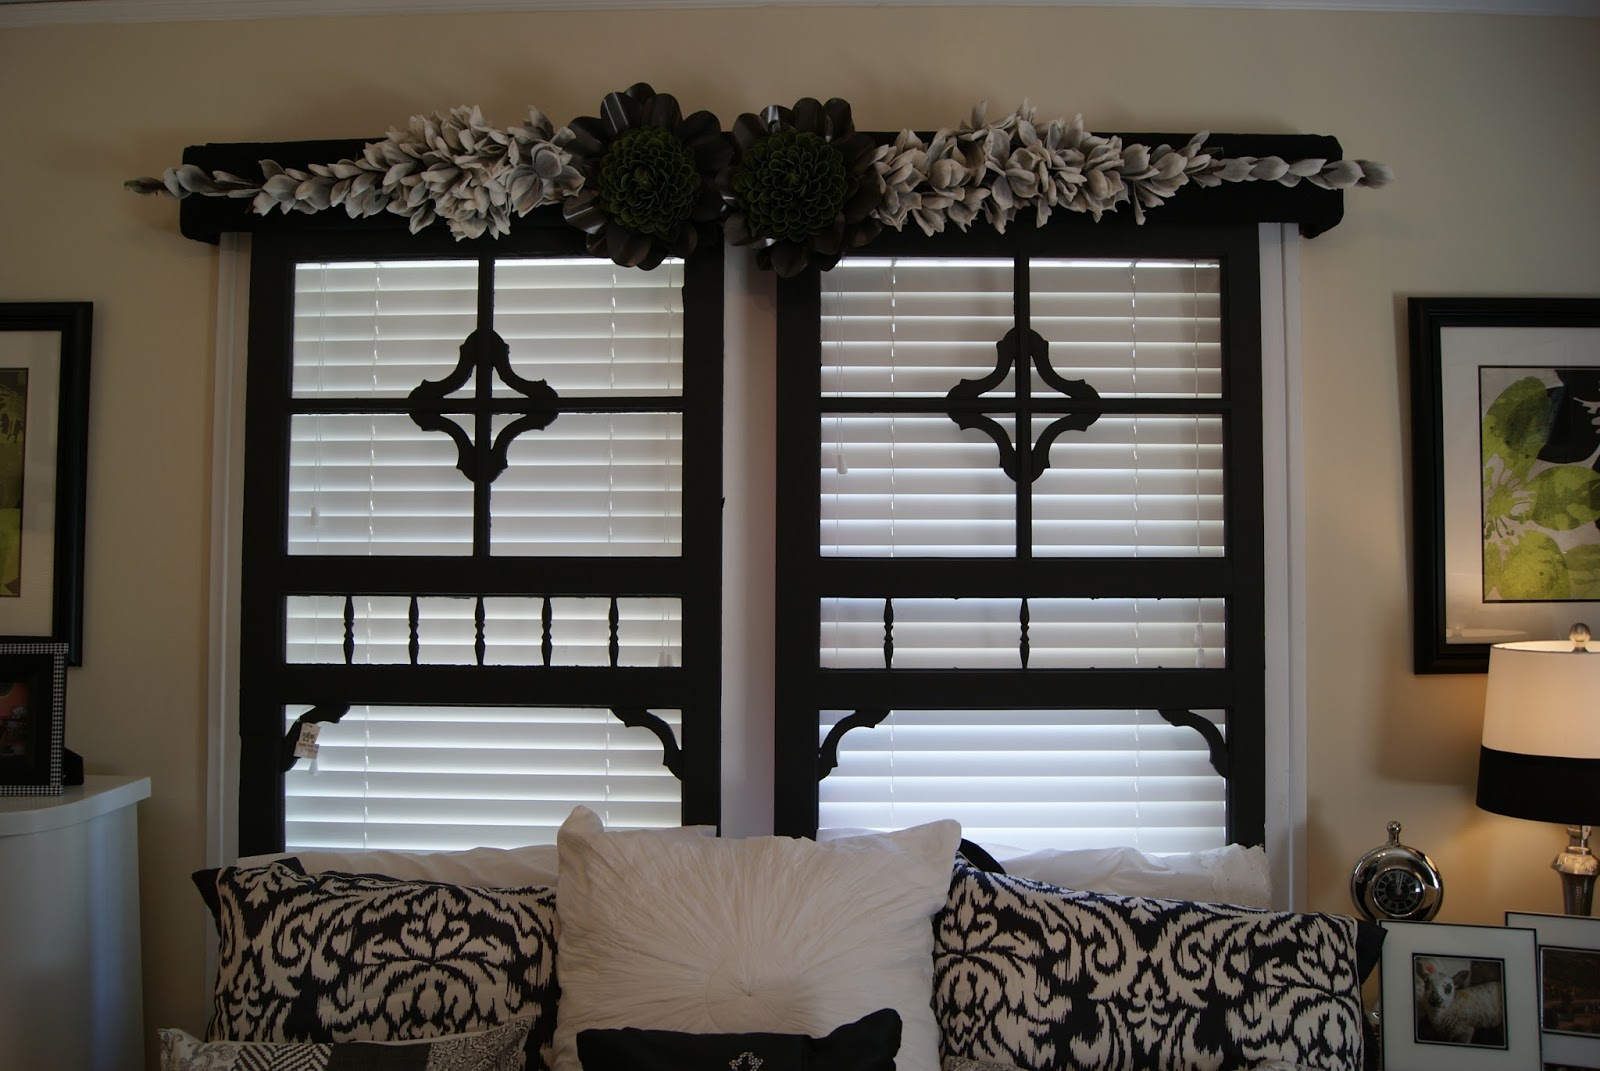 Hung Inside Frames As Wall Decor Outdoor Garden Bench Painted Black. Full resolution  snapshot, nominally Width 1600 Height 1071 pixels, snapshot with #8A6541.